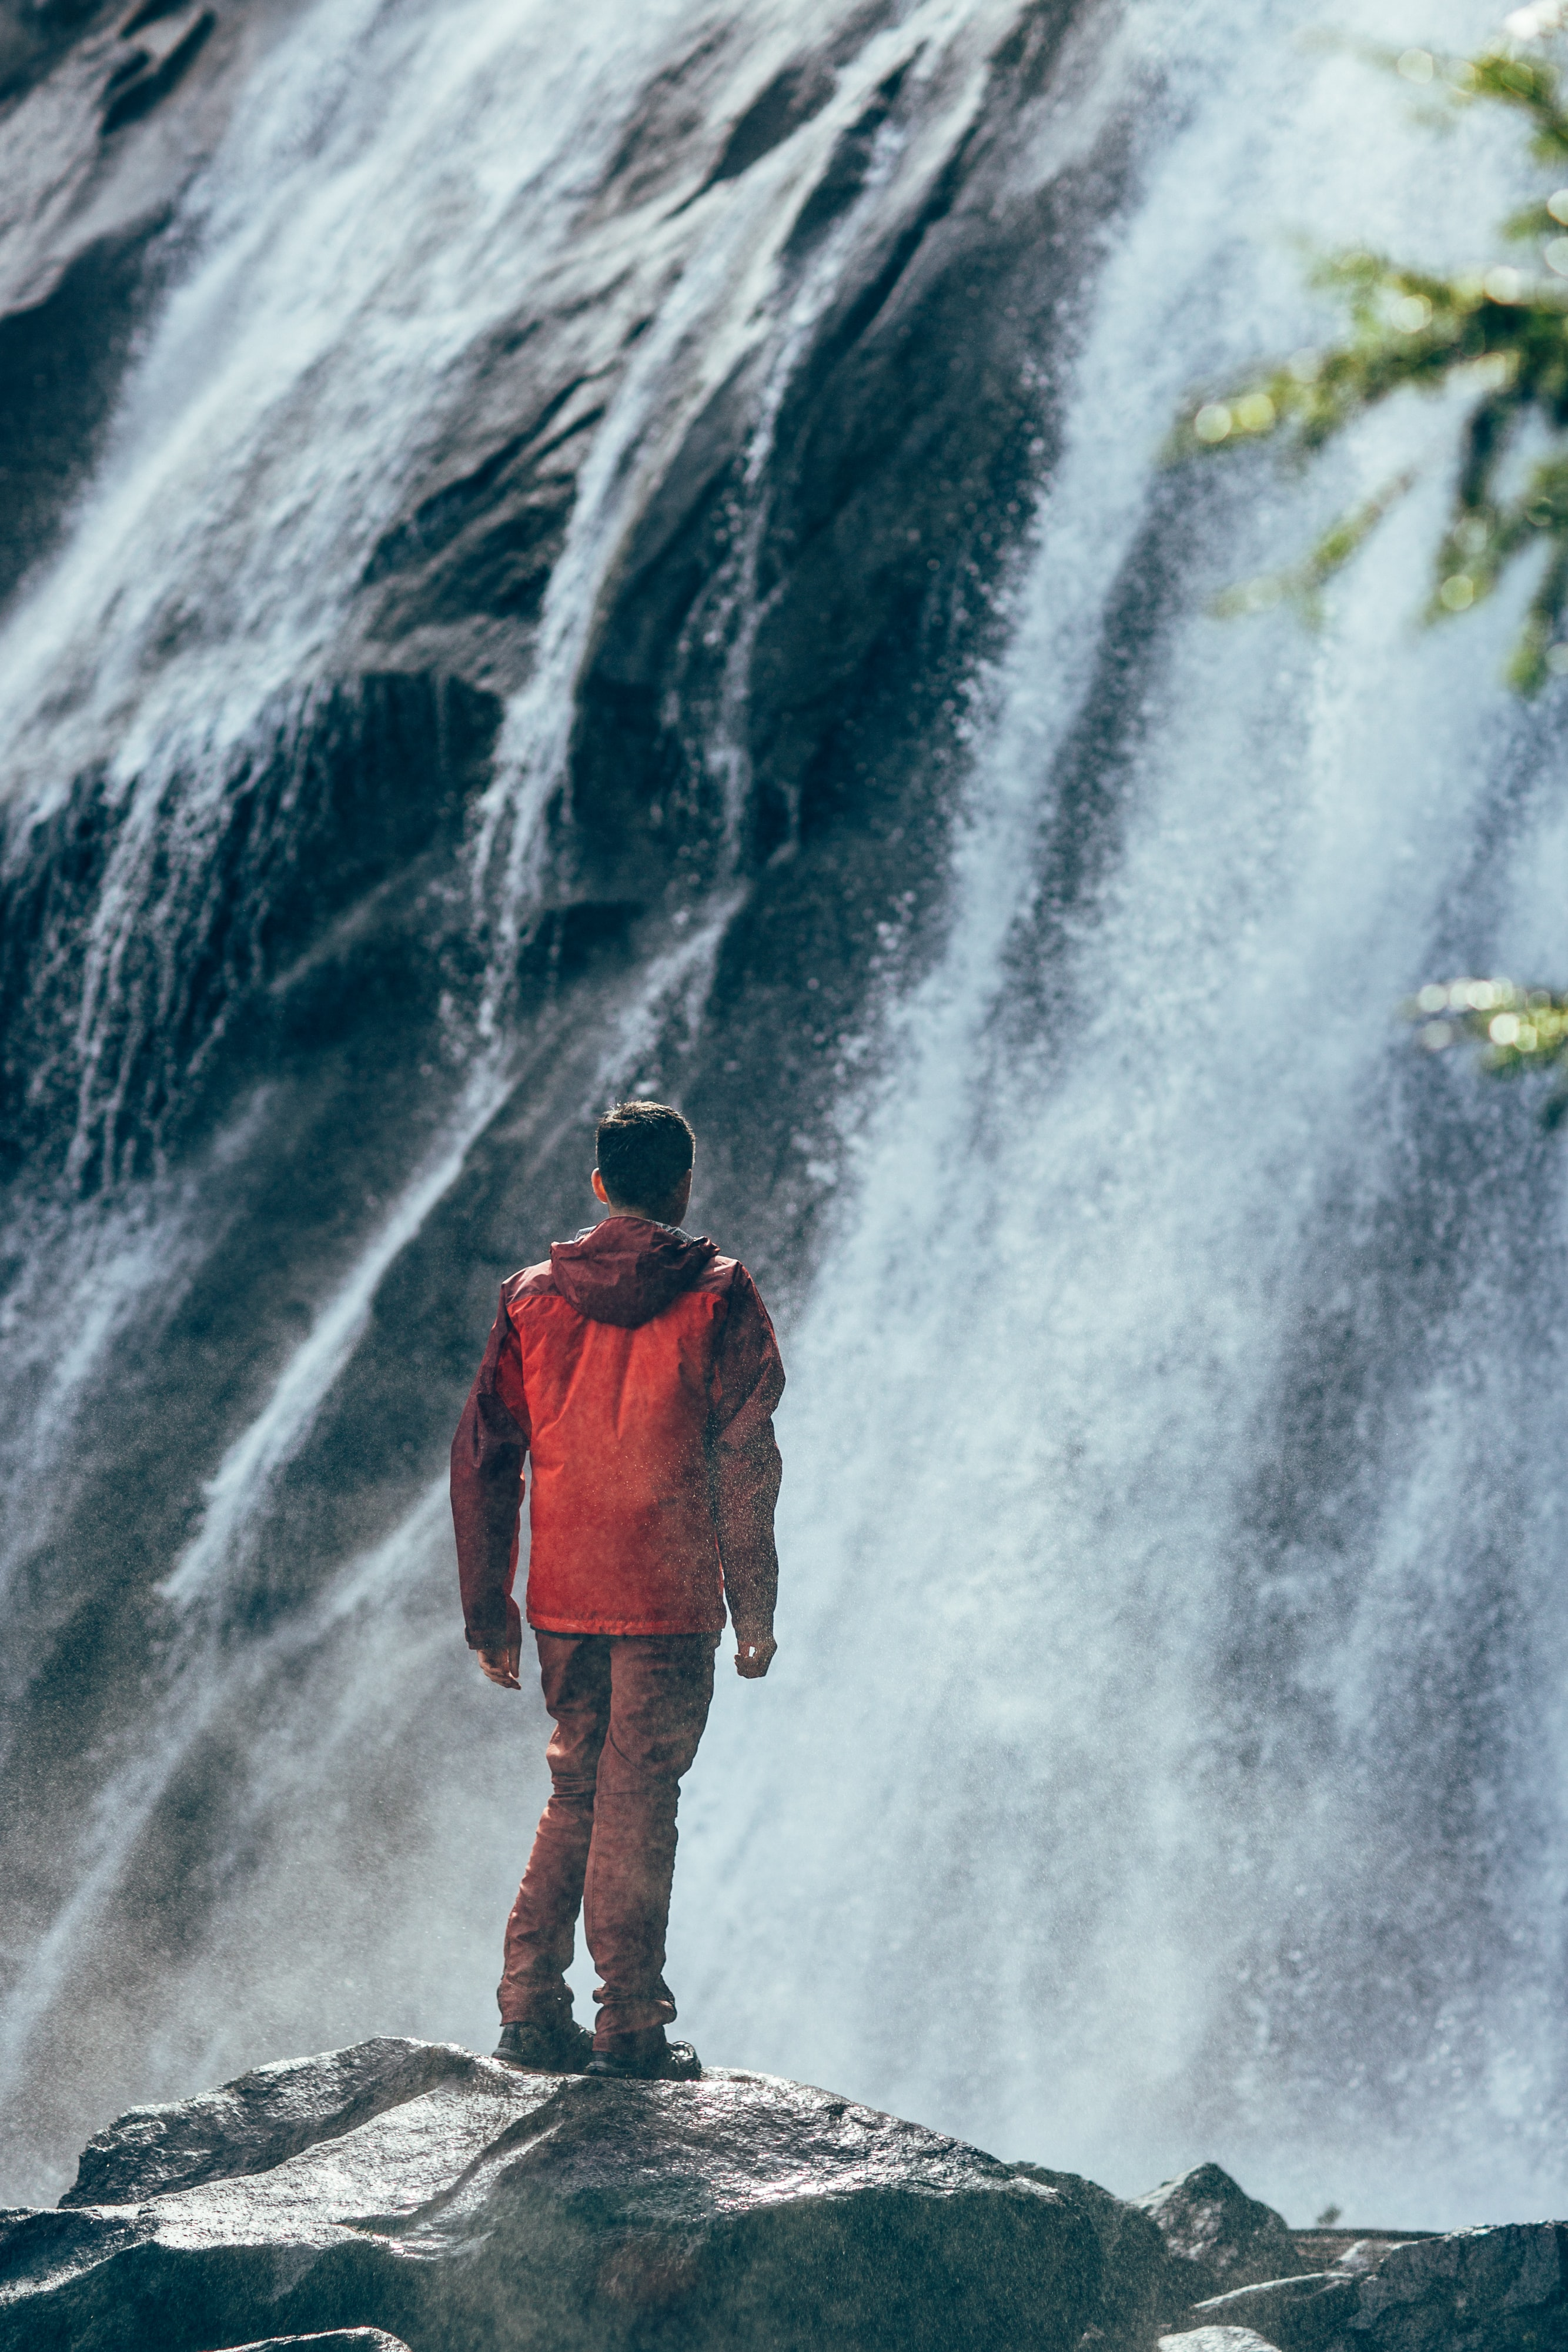 man standing on rock facing waterfall